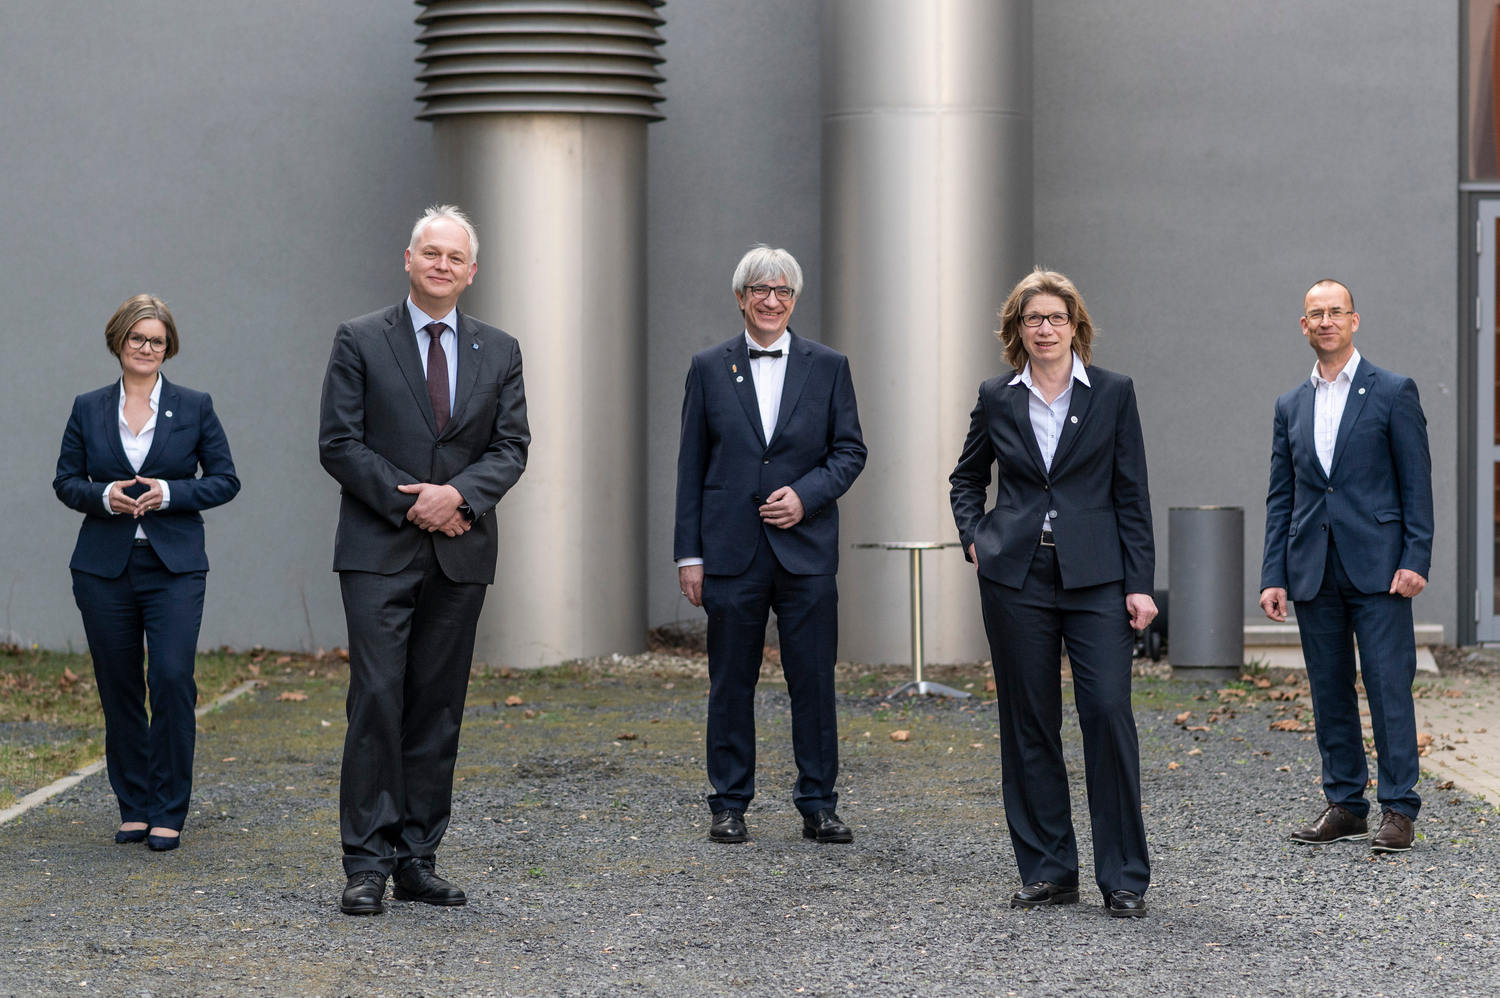 The Presidential Board of Göttingen University as of 1 April 2021: Dr Valérie Schüller, Professor Bernhard Brümmer, Professor Metin Tolan, Professor Anke Holler and Professor Norbert Lossau (from left to right) - Photo: Peter Heller